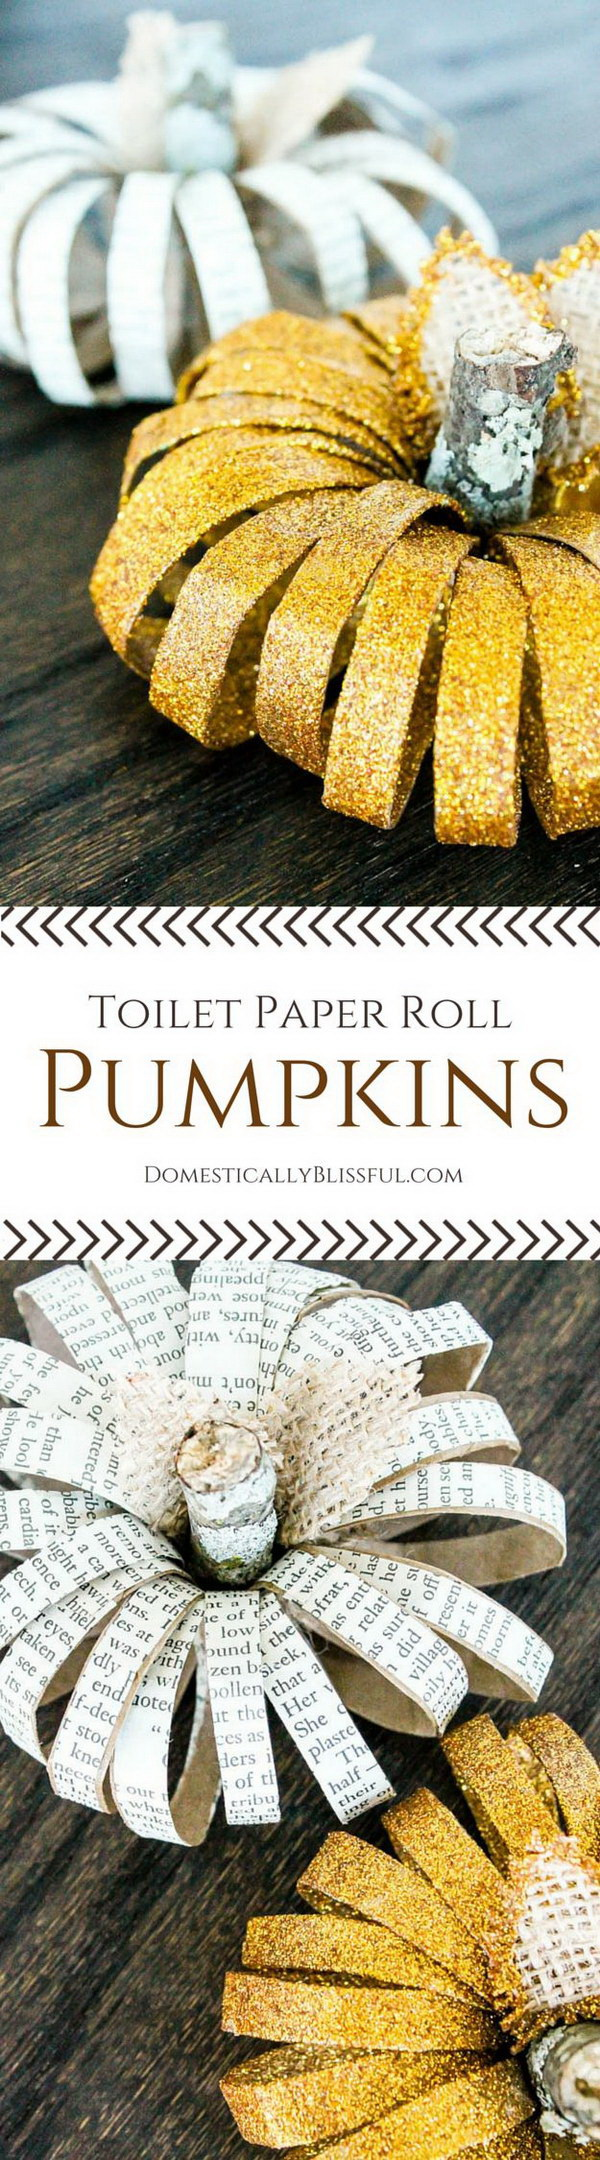 DIY Toilet Paper Roll Pumpkins. Make unique pumpkins with toilet paper rolls.